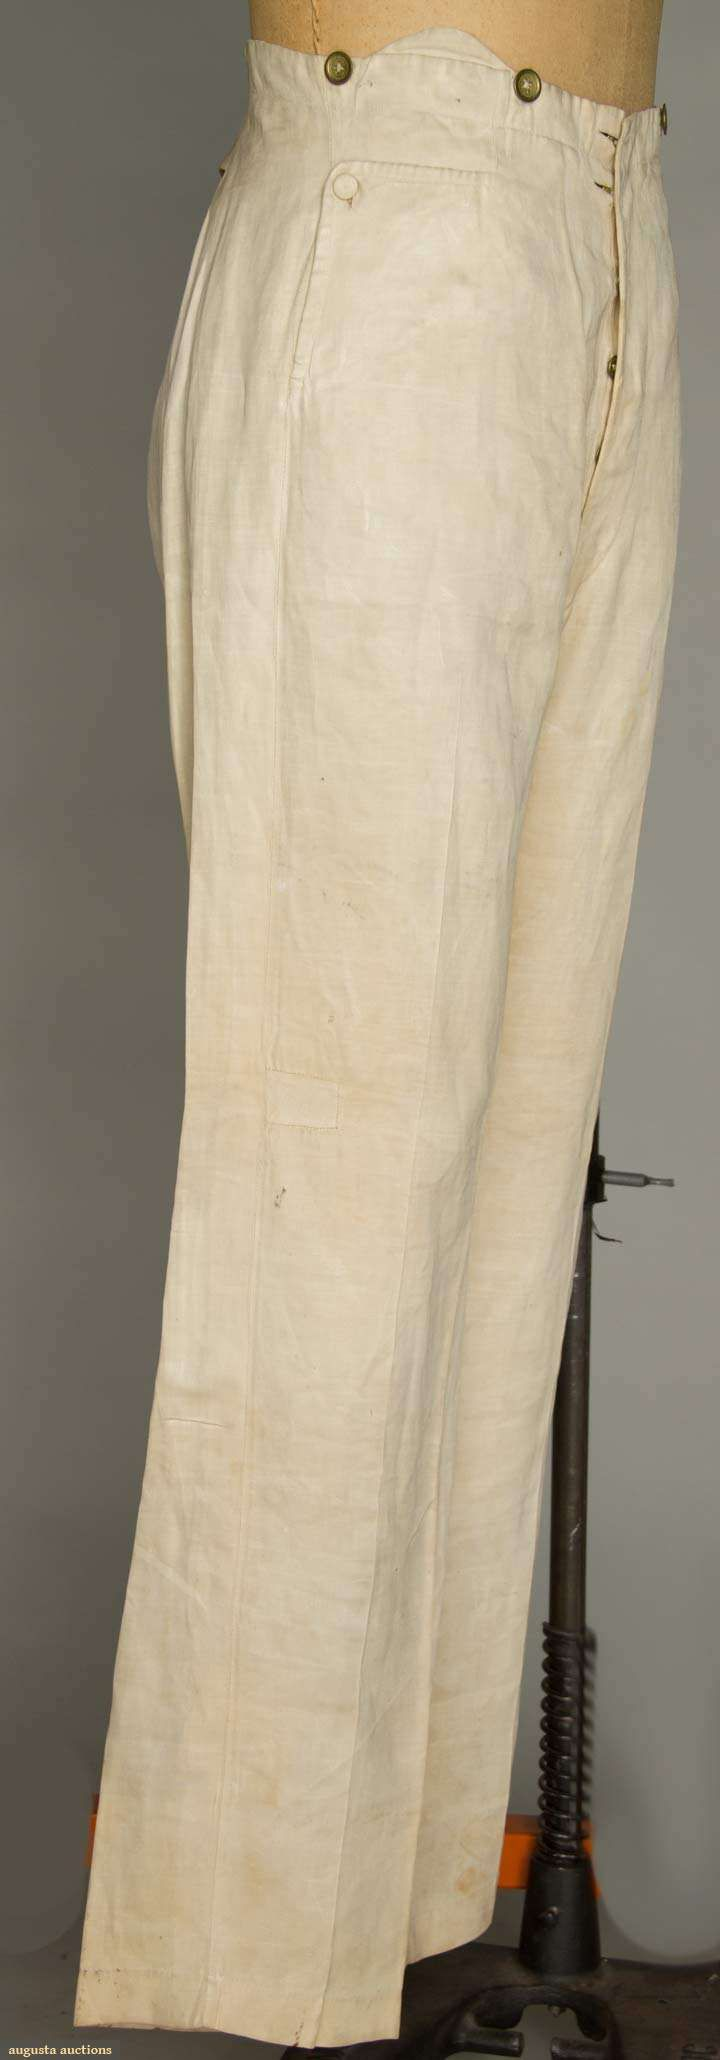 FOUR MEN'S LINEN SUMMER GARMENTS, 1850-1869 1 3/4 coat, 1 large chest pocket & 1 small watch pocket, 2 etched MOP buttons above pleated & vented back skirt, eyelet holes for front buttons; 1 tan vest w/ shallow notched collar, tiny self fabric buttons & muslin back; 2 pair cream satinweave linen pants w/ high pointed back waist & brass buttons at waist & fly: 1 w/ right angle button flap pockets below waist